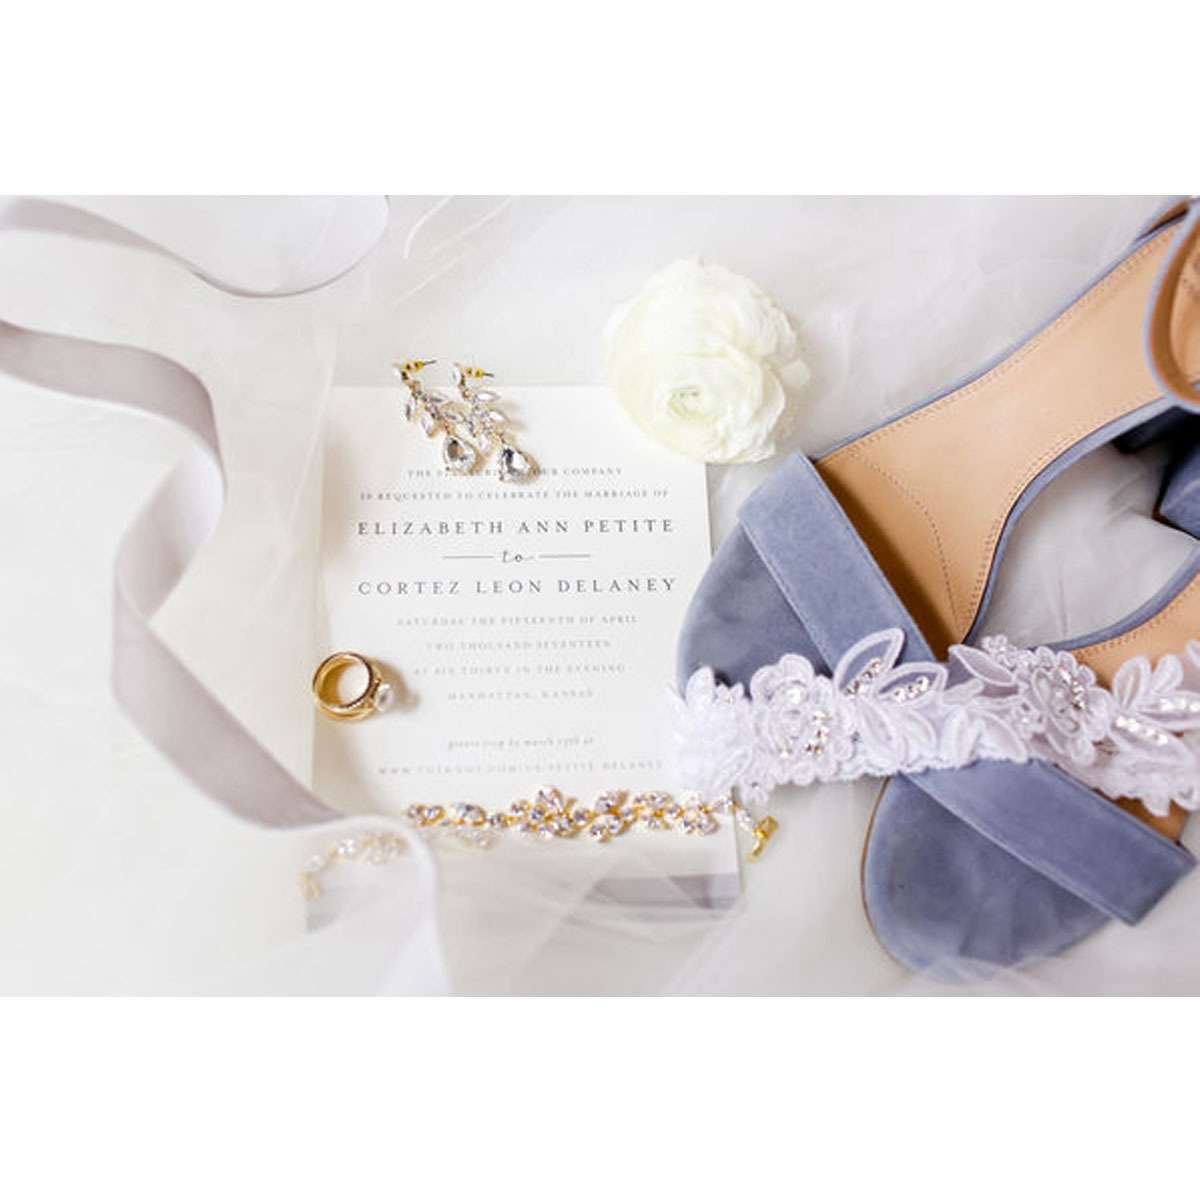 Light blue heels next to a wedding invitation, wedding ring, and ribbons photo